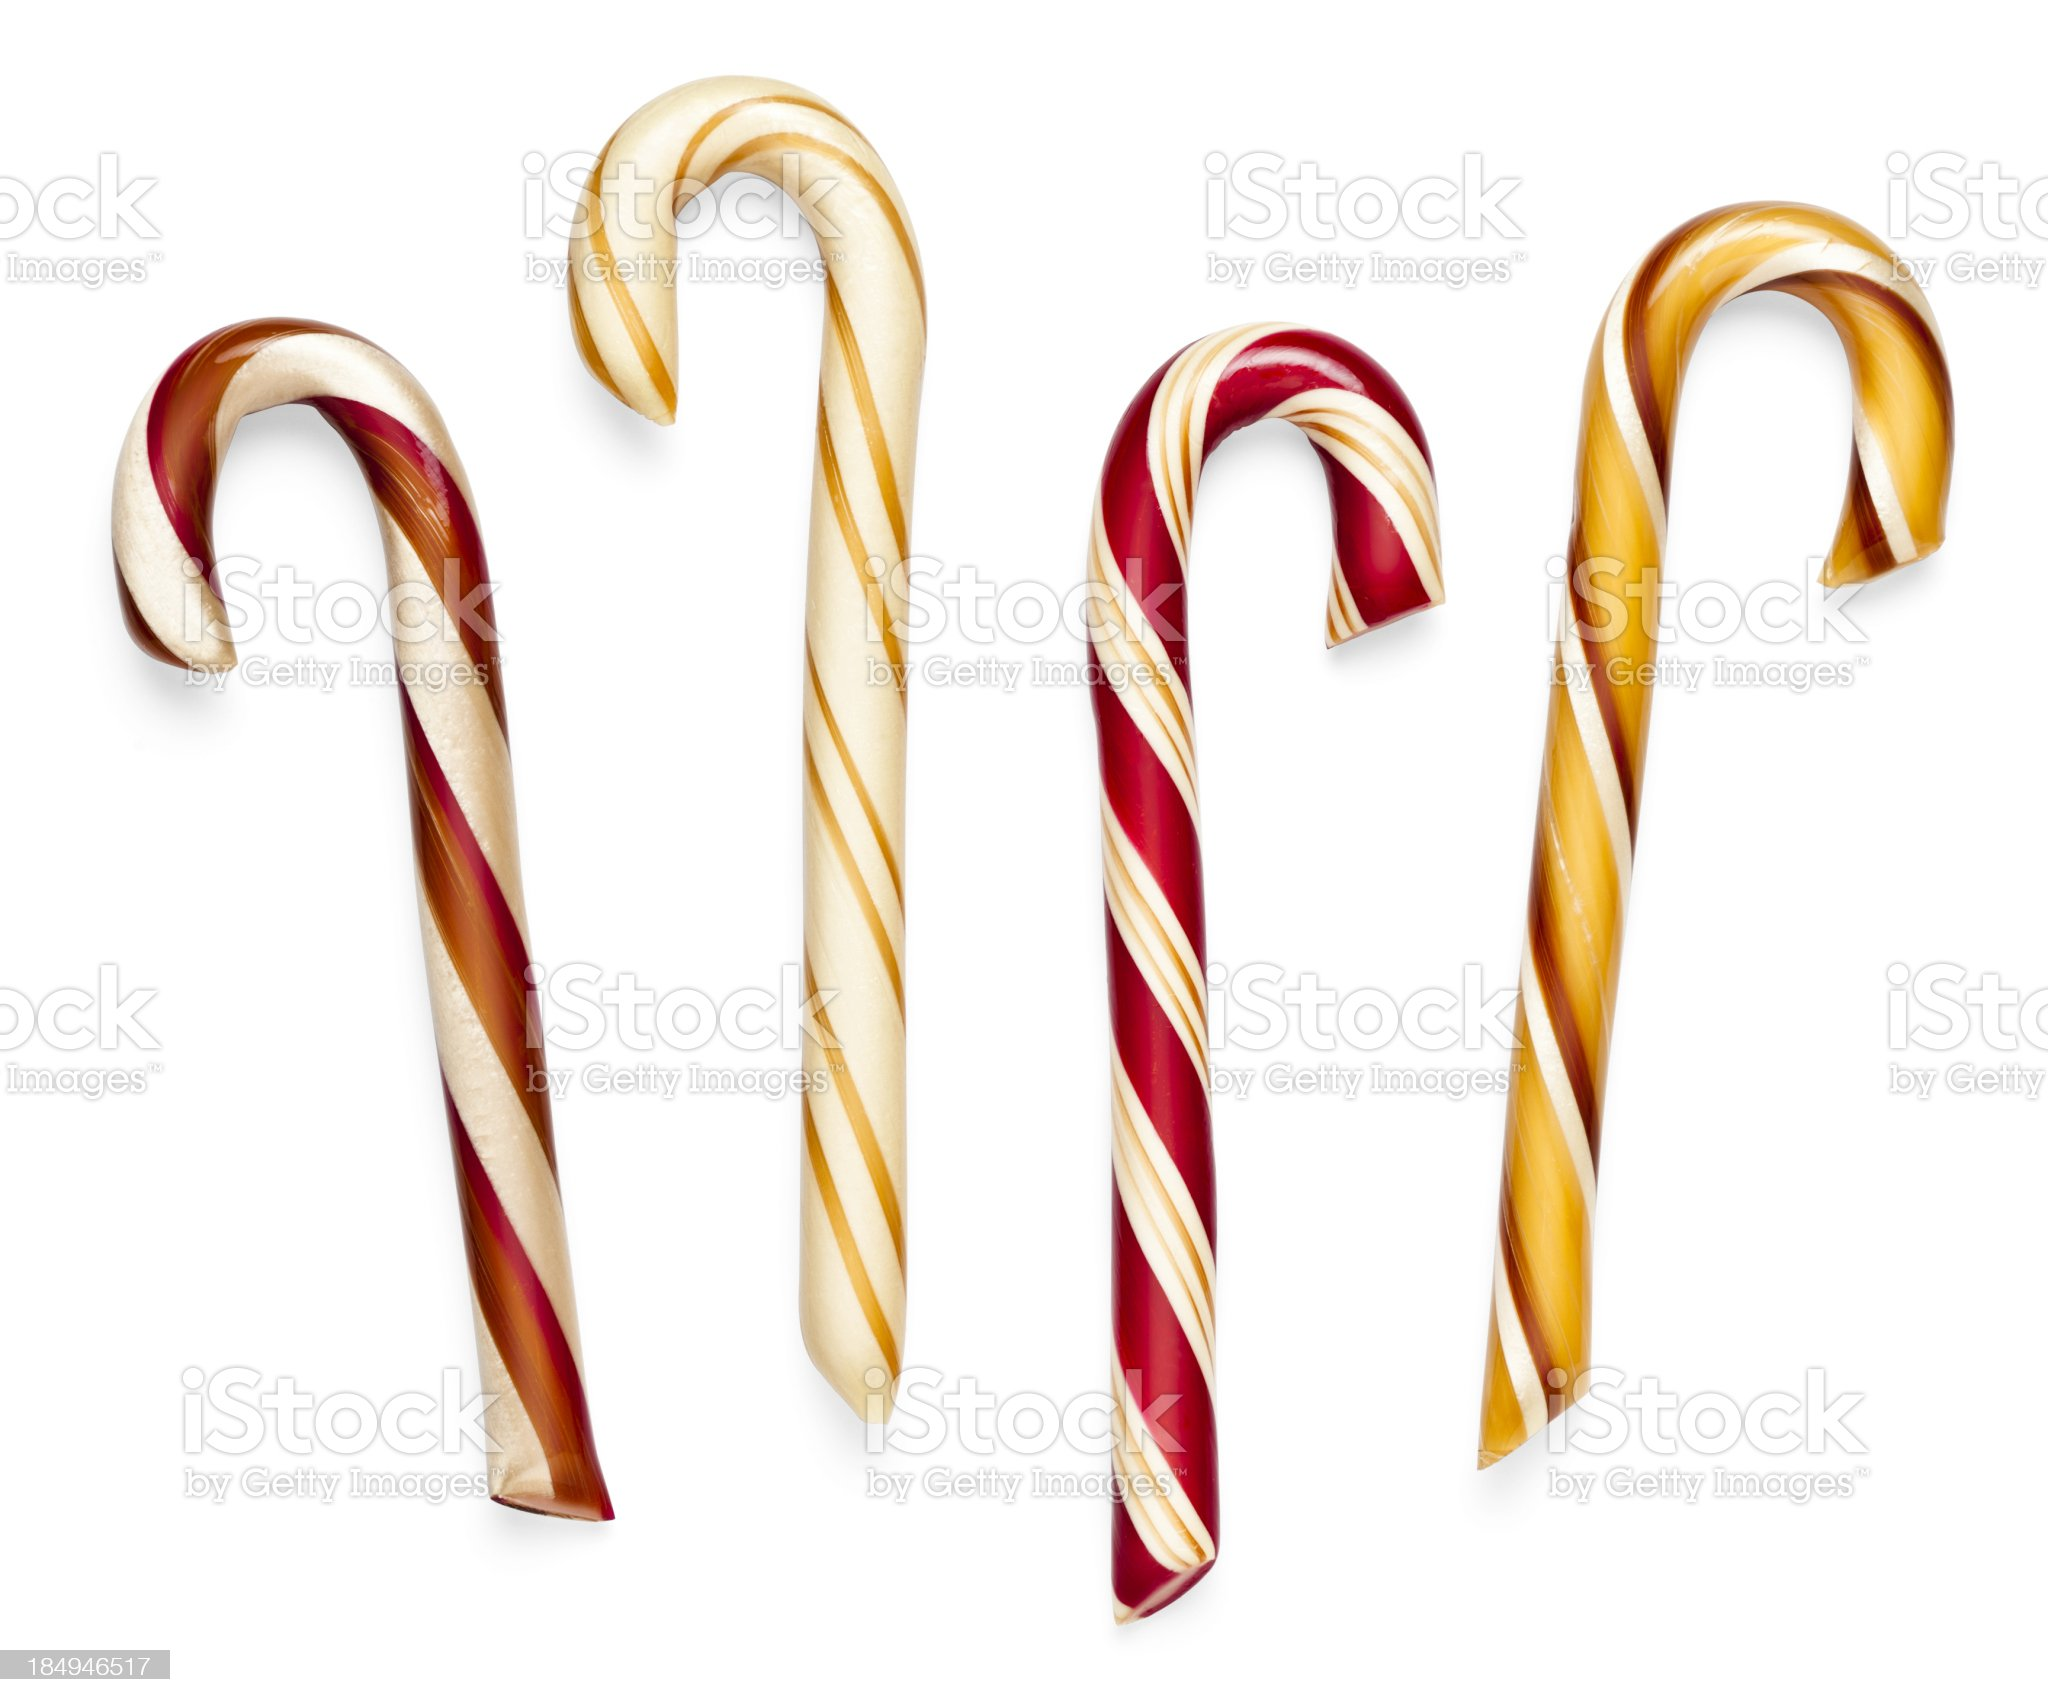 Classic Candy Canes Isolated (Clipping Path) royalty-free stock photo